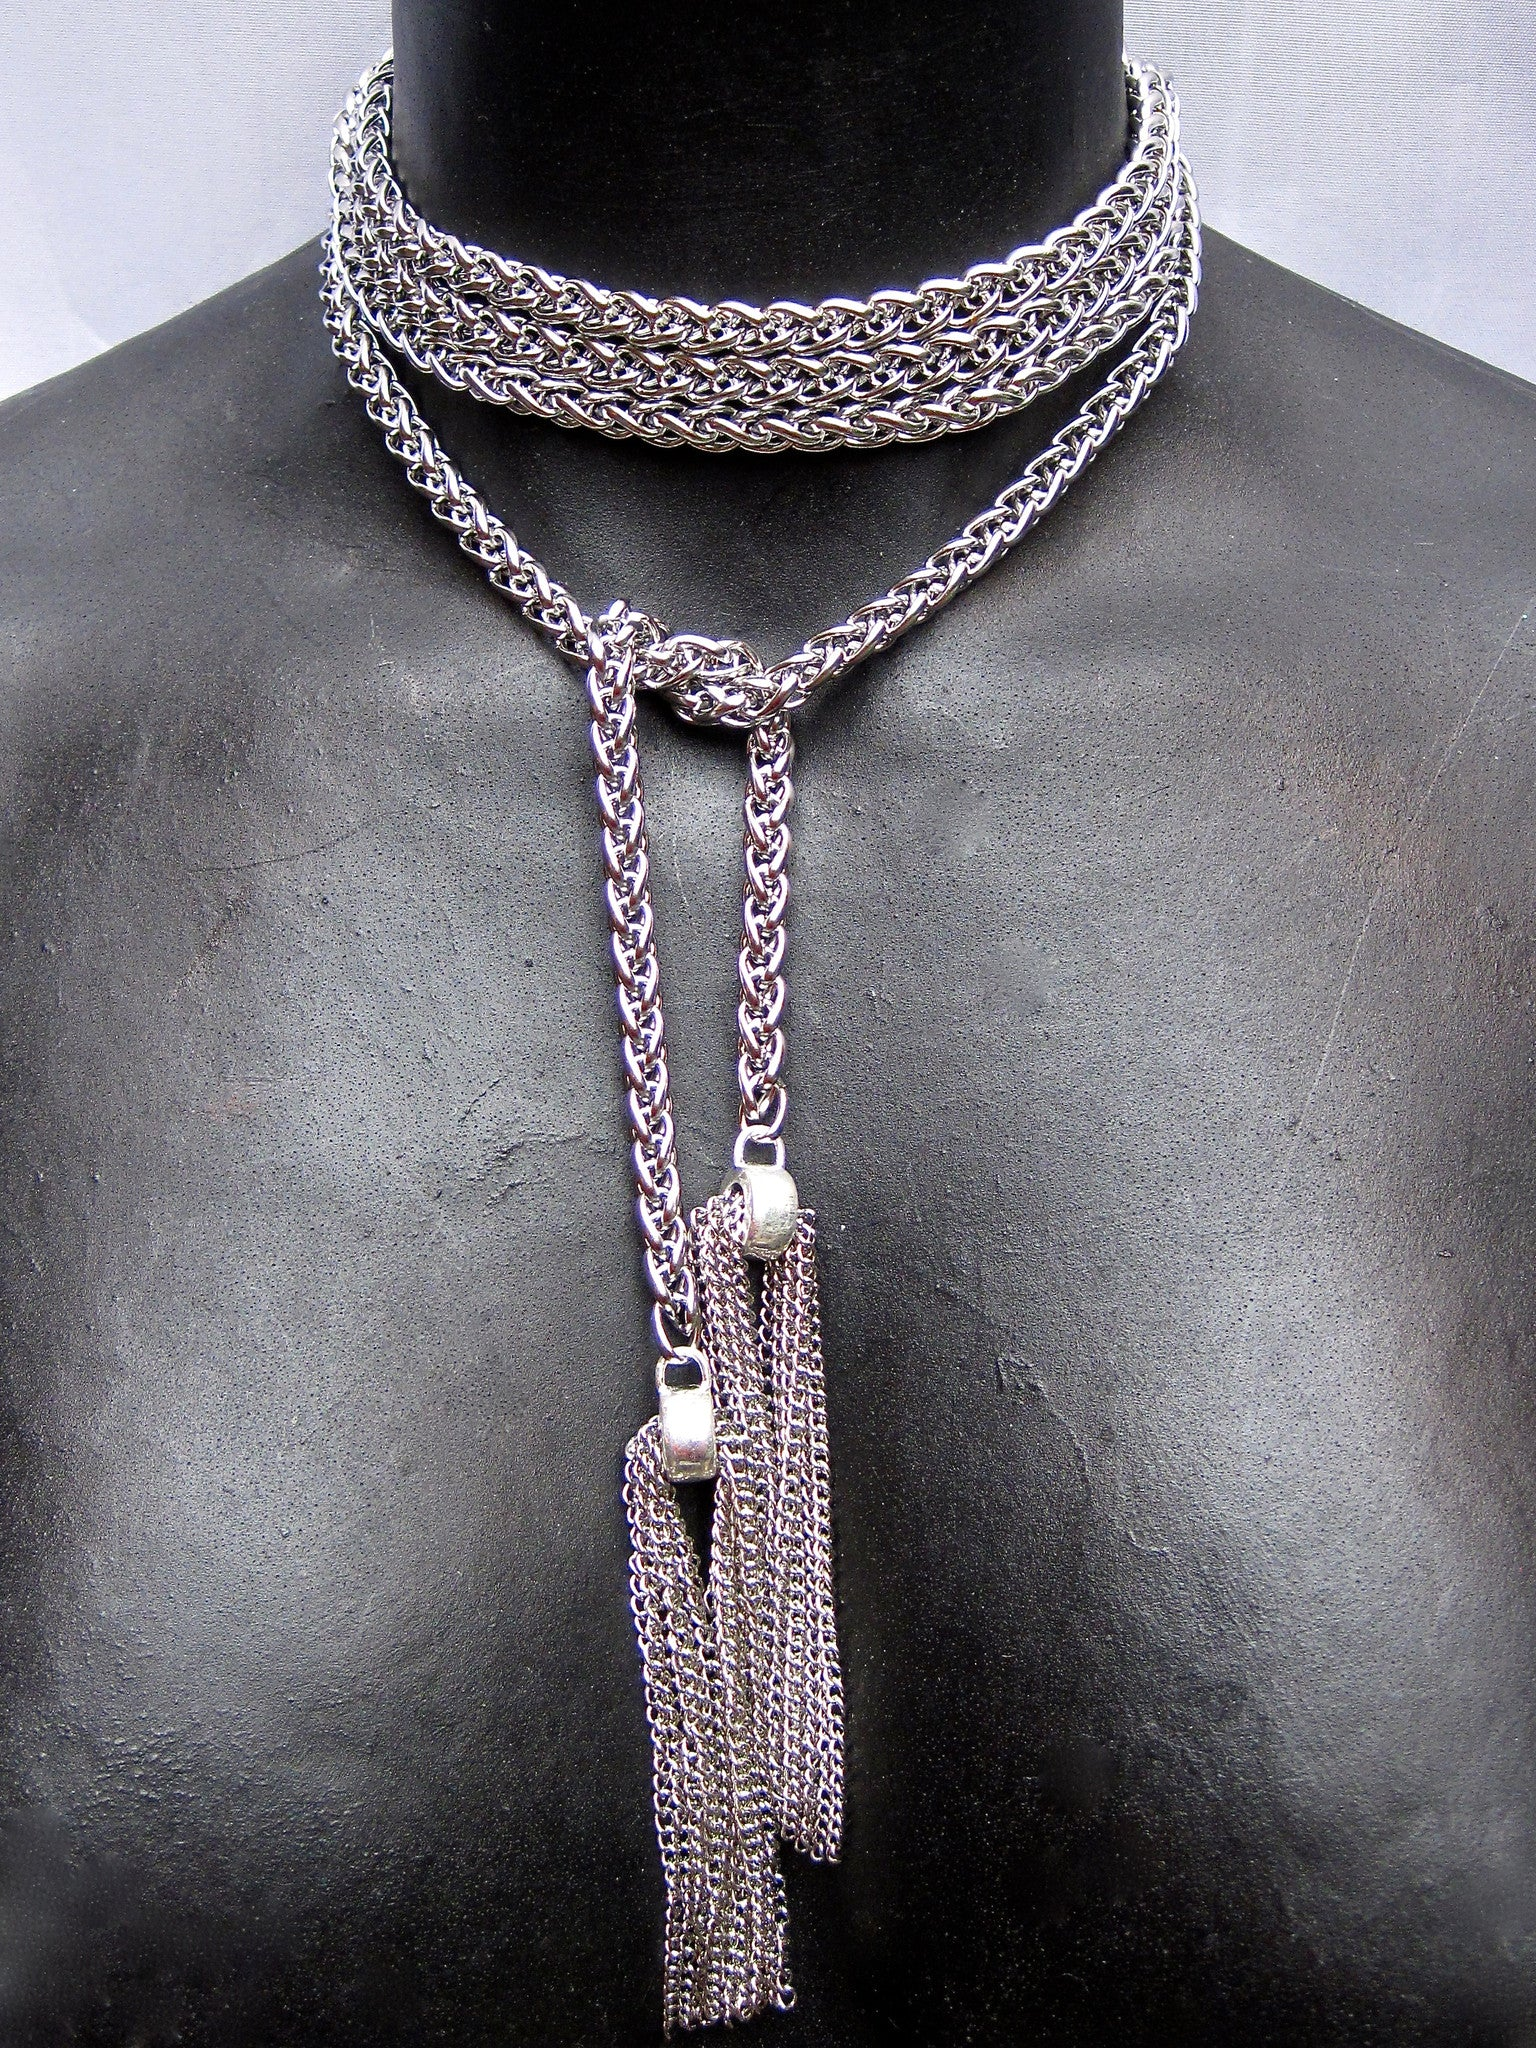 Extra Long Stainless Steel Lariat With Chain Tassels NYET Jewelry